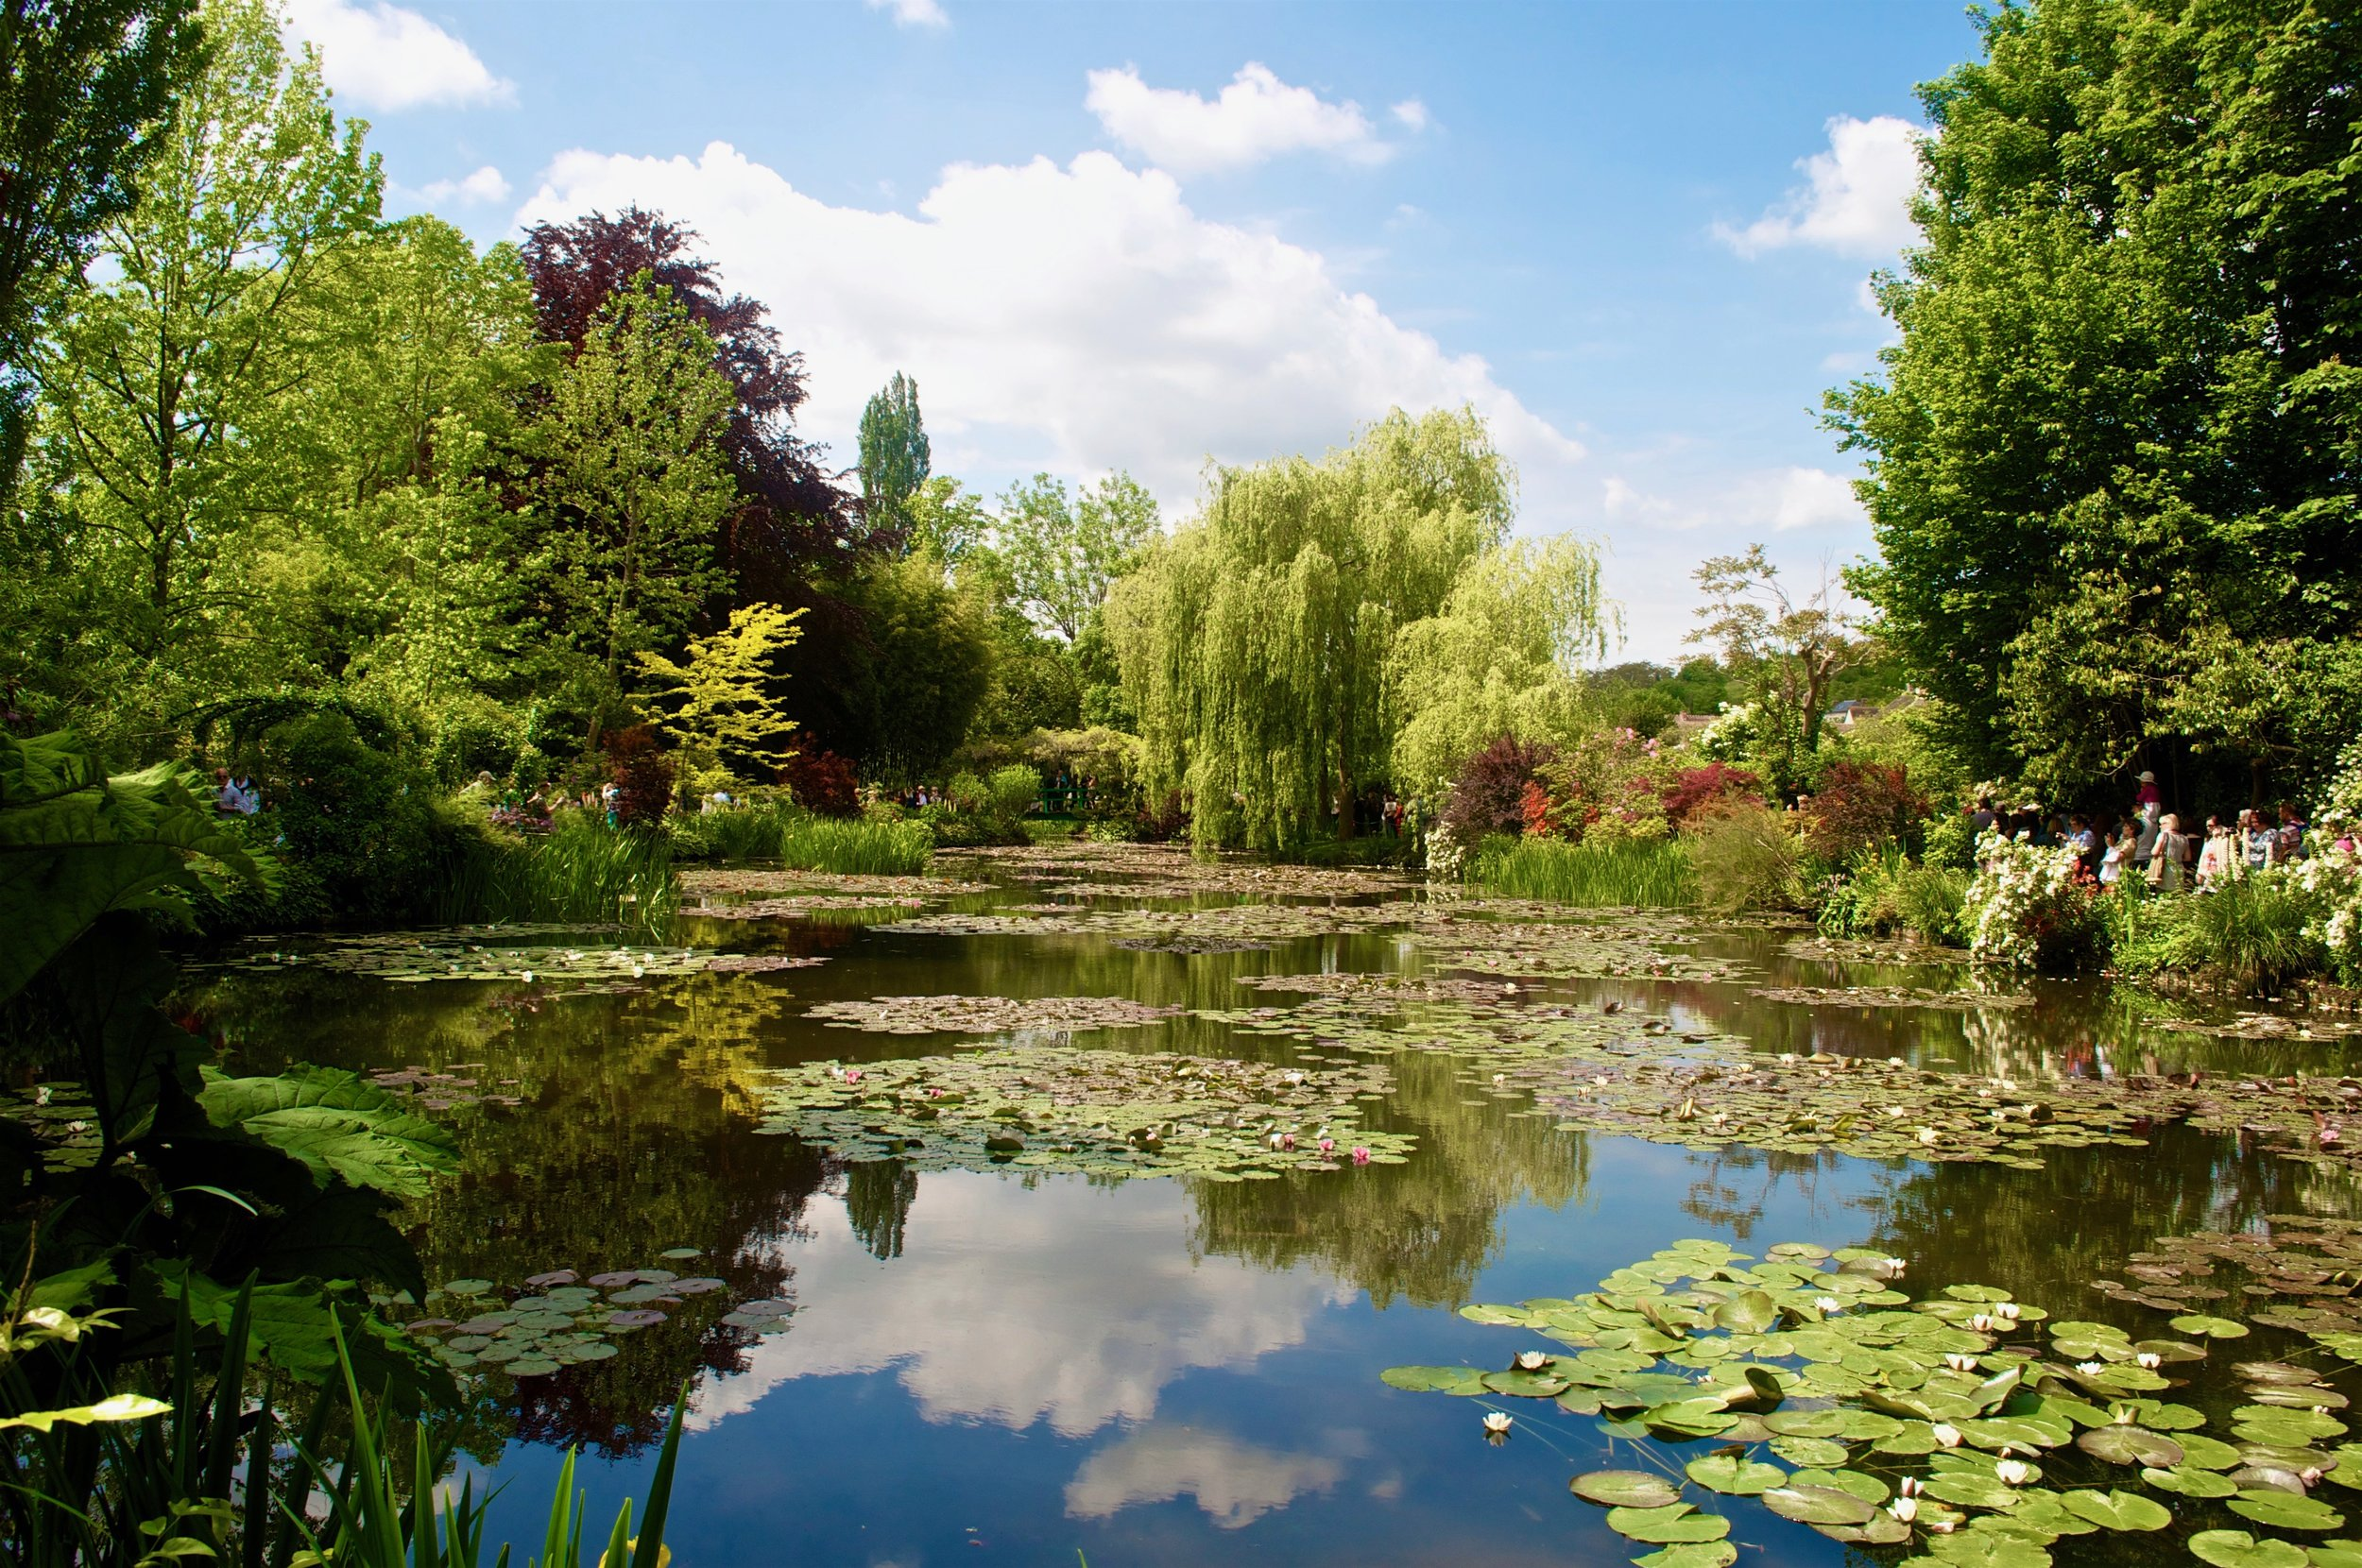 The Ultimate Northern France Itinerary - Giverny, Monet Gardens, France